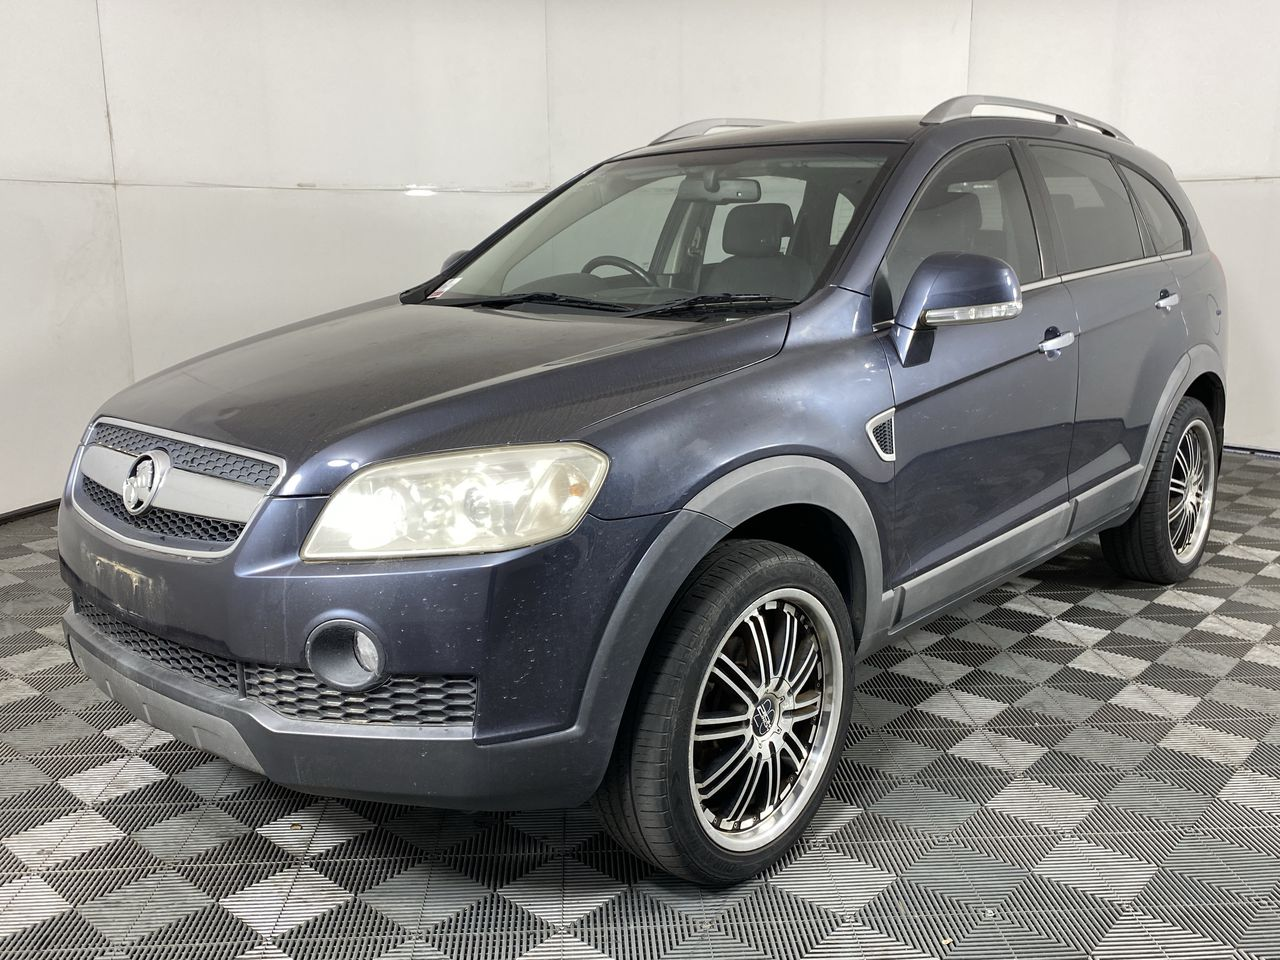 2009 Holden Captiva LX (4x4) CG Automatic 7 Seats Wagon 119216km